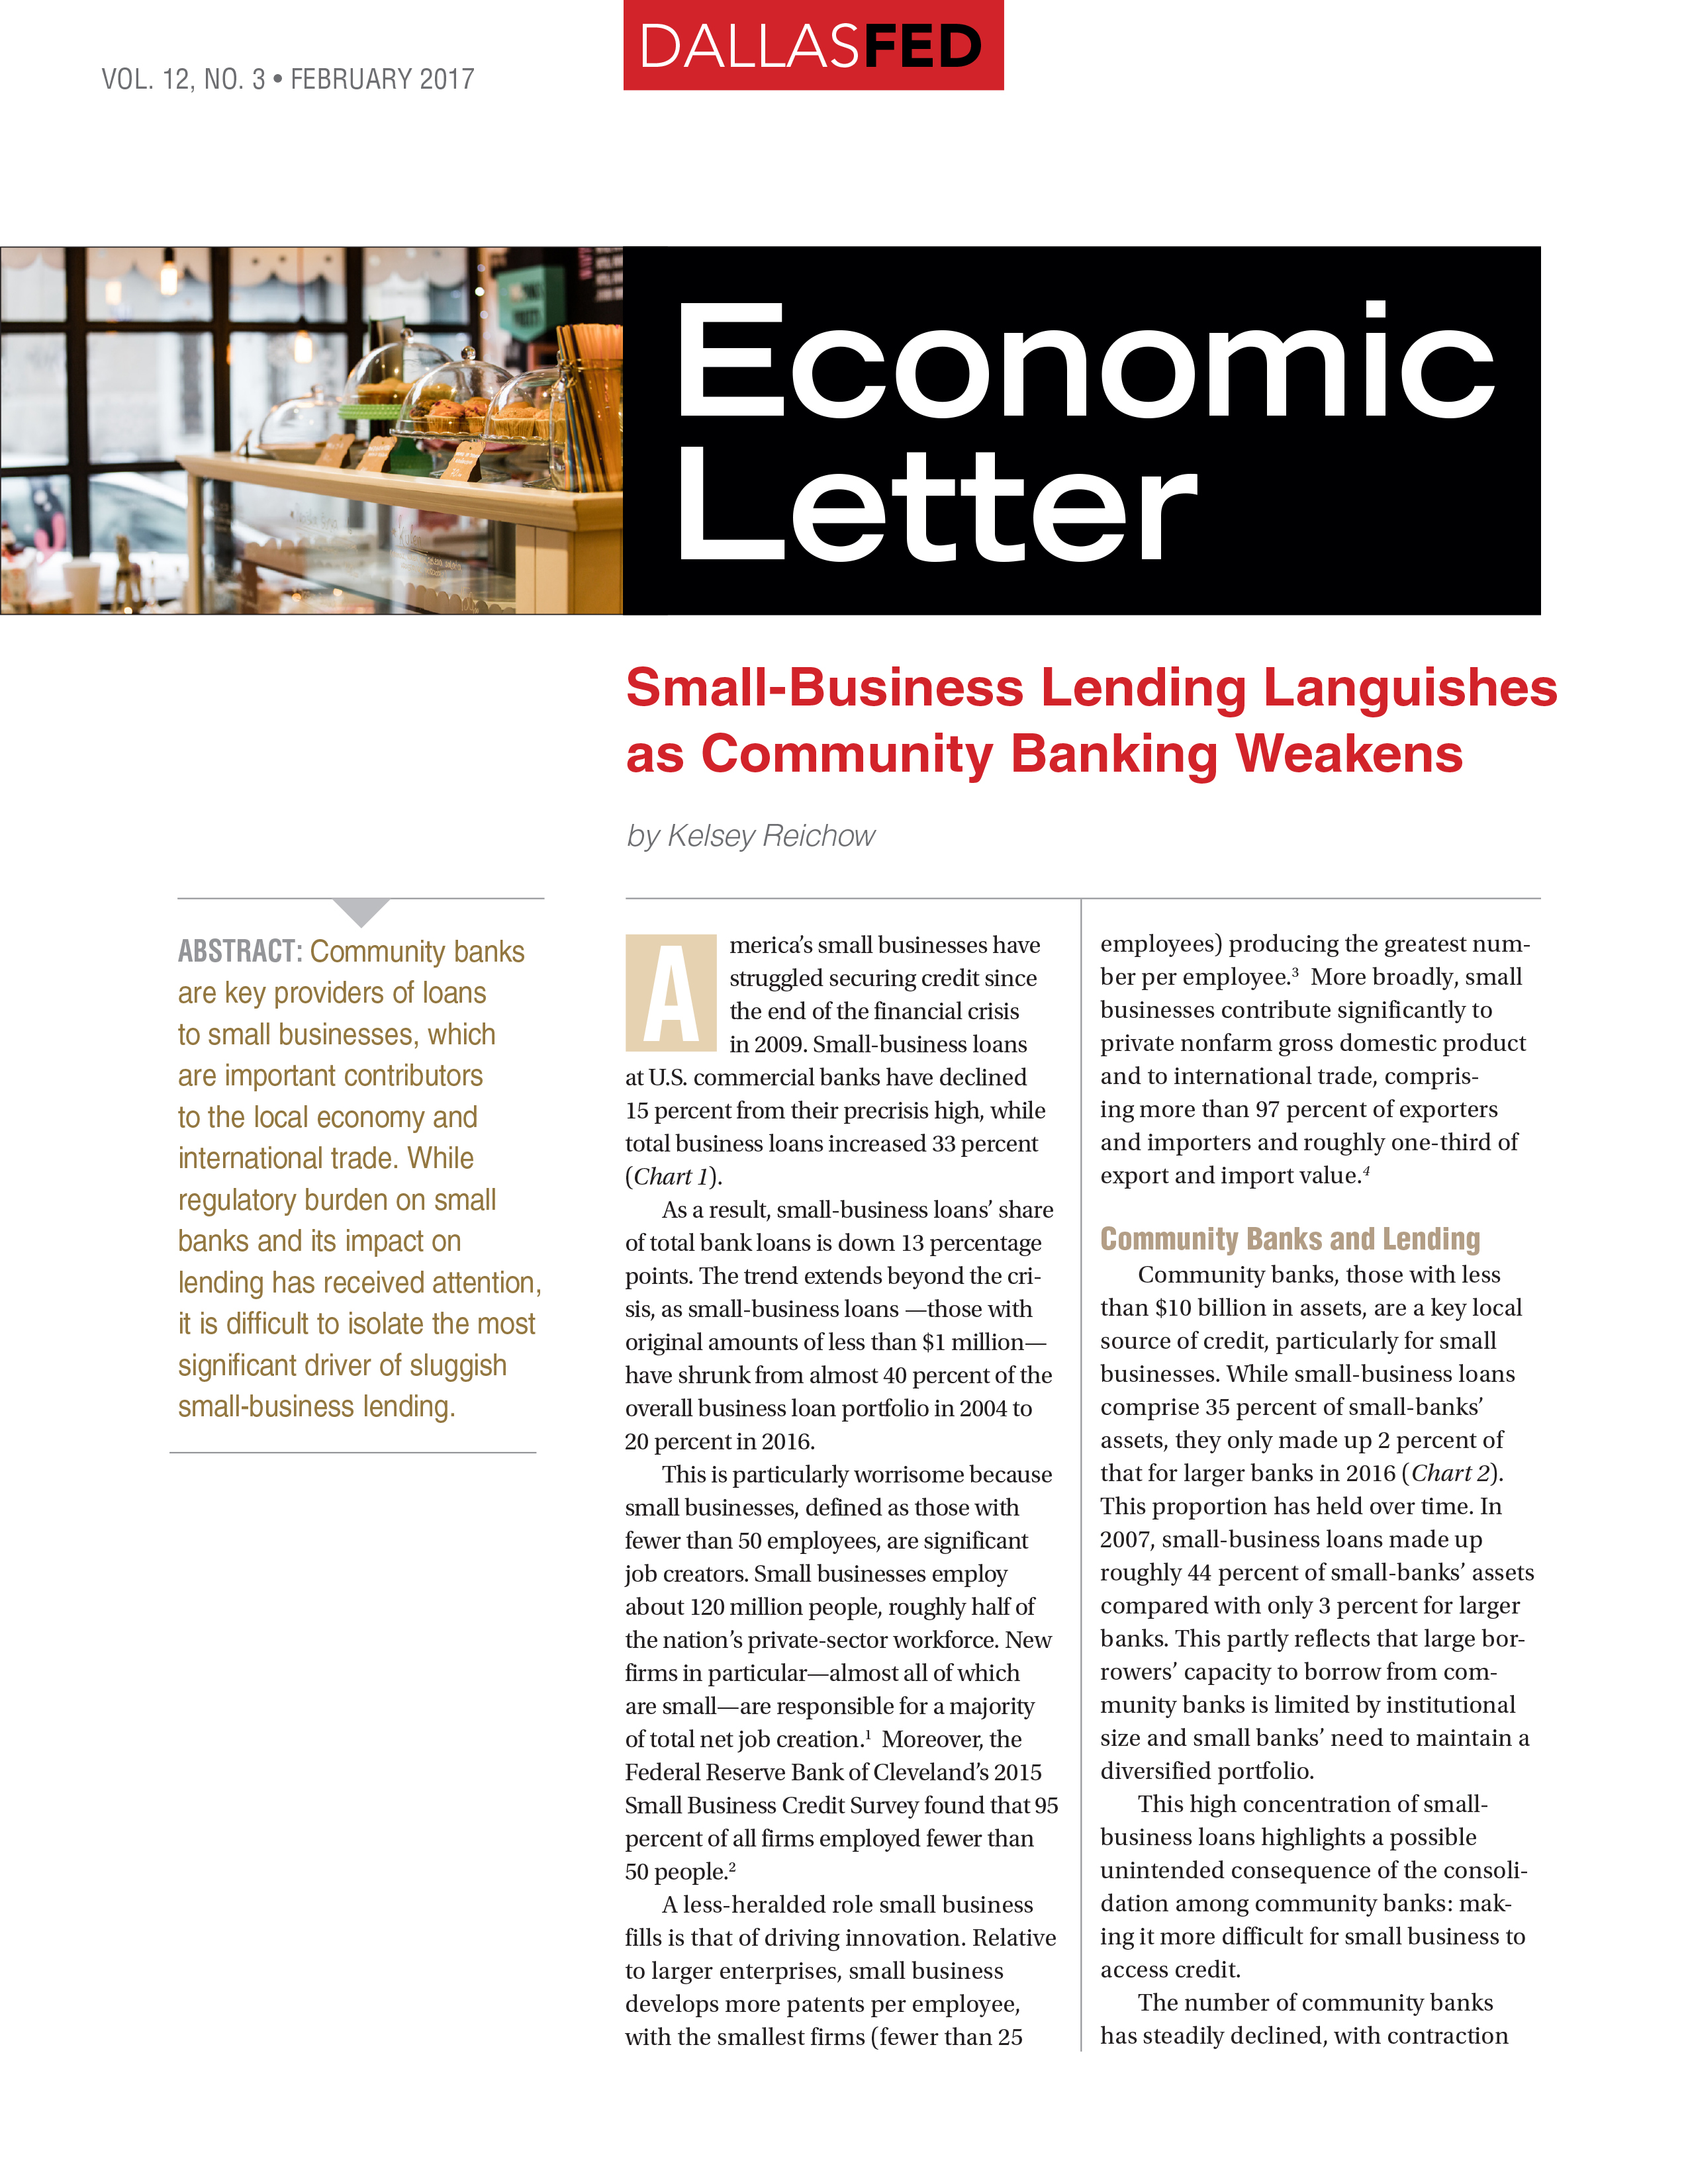 Small-Business Lending Languishes as Community Banking Weakens